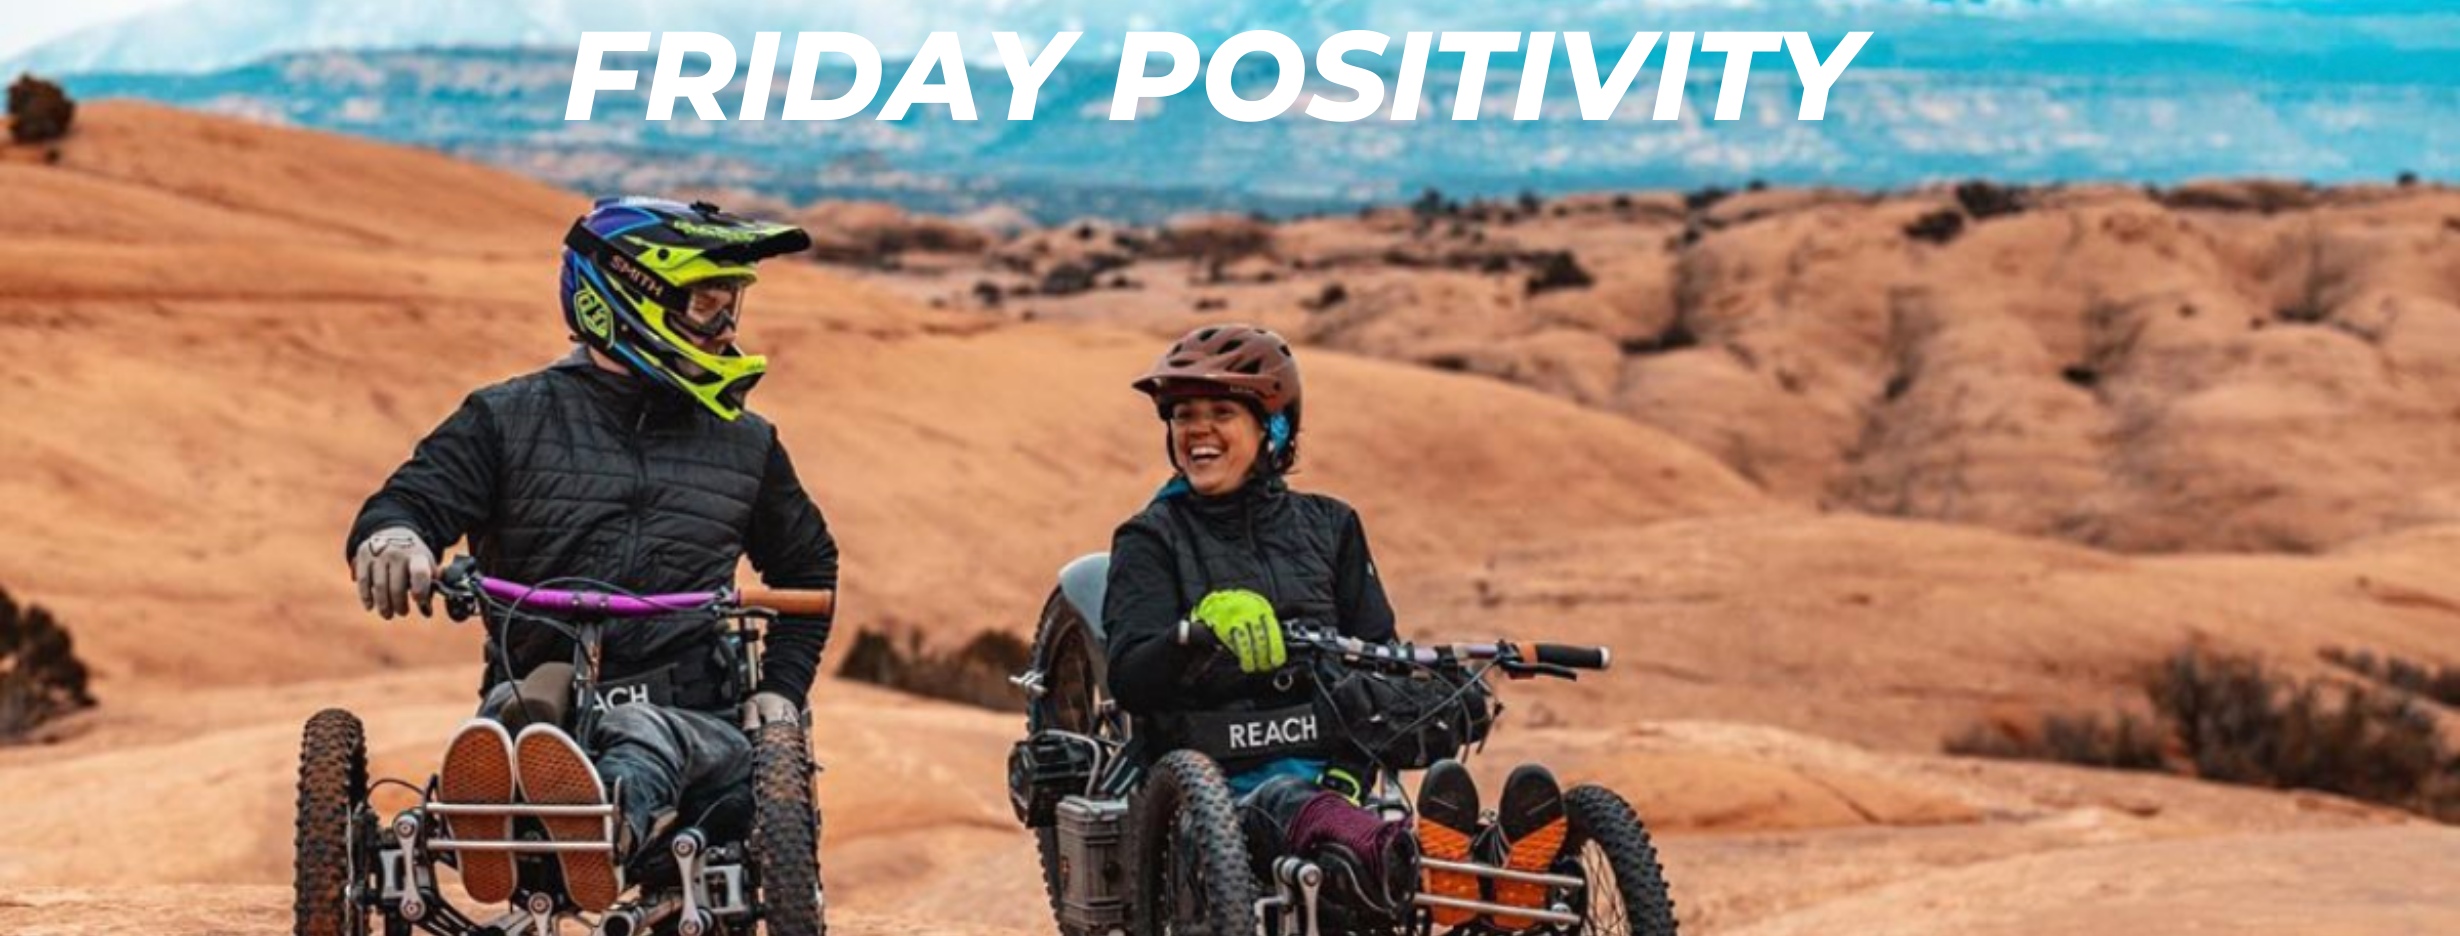 Friday Positivity - Man Designs Special Mountain Bike For People With Disabilities  Thumbnail